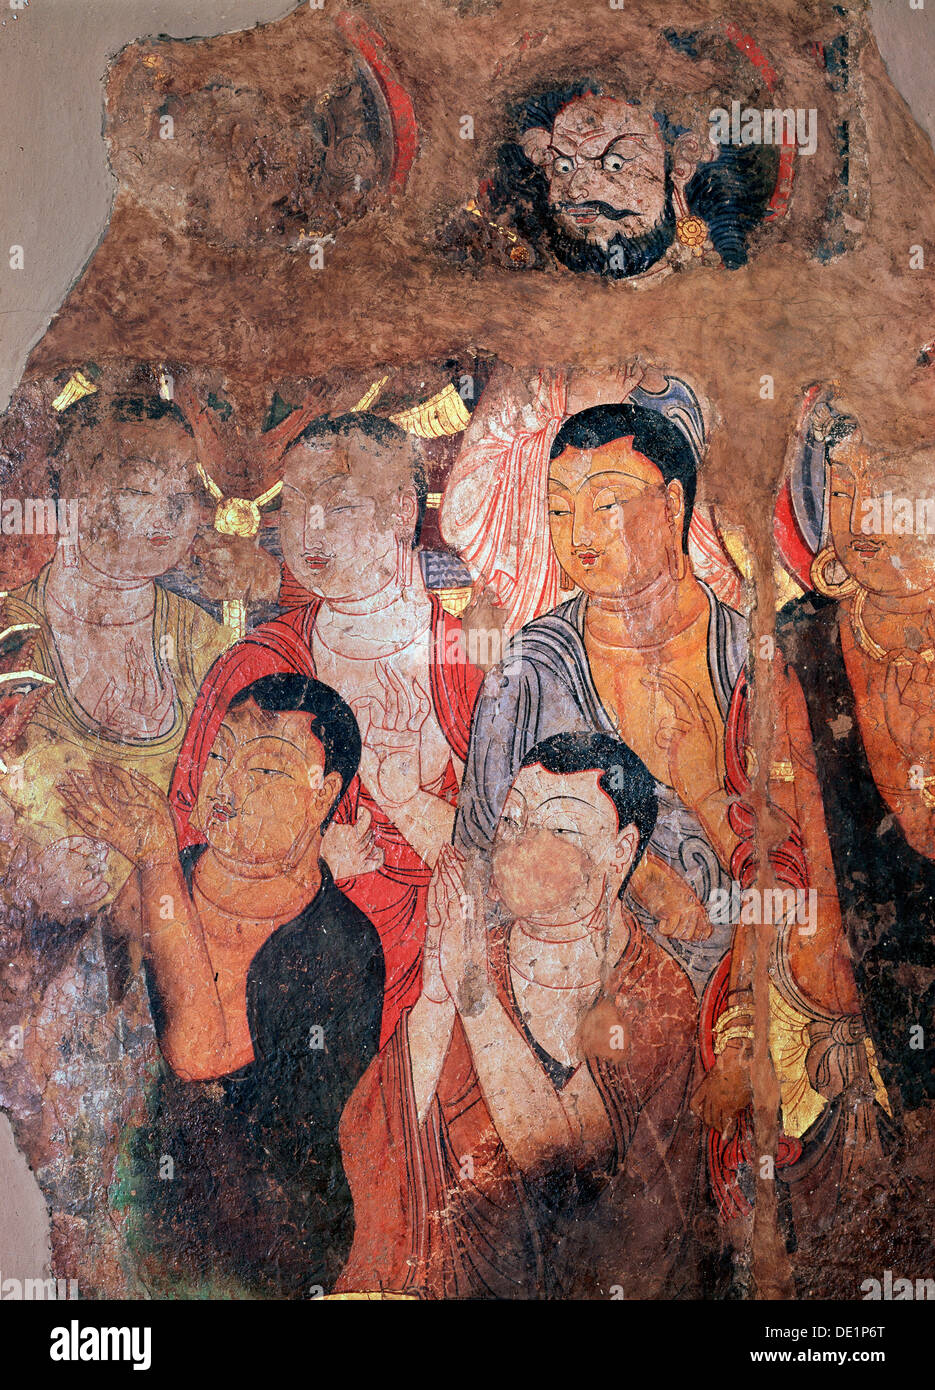 'Group of monks and Bodhisattvas', 9th-10th century. - Stock Image